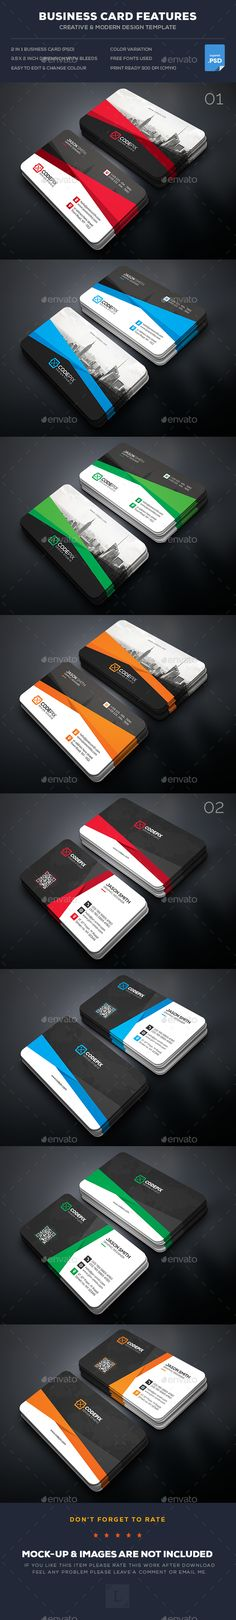 Corporate Business Card Templates PSD Bundle. Download here: https://graphicriver.net/item/corporate-business-card-bundle/17602339?ref=ksioks